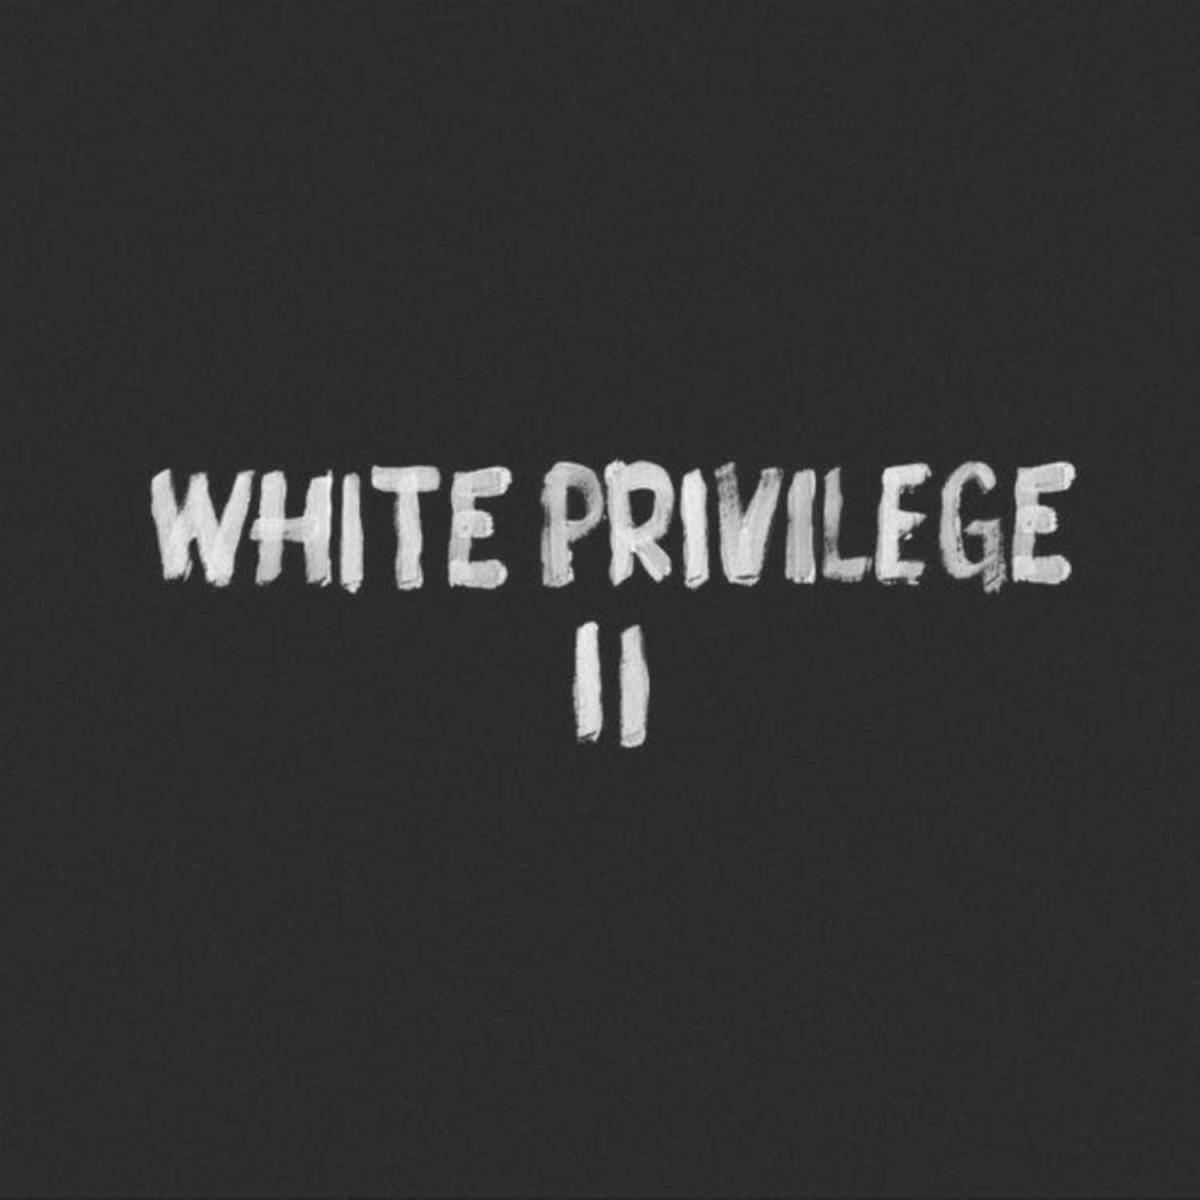 macklemore white privilege white allies and black liberation macklemore white privilege 2 white allies and black liberation south seattle emerald